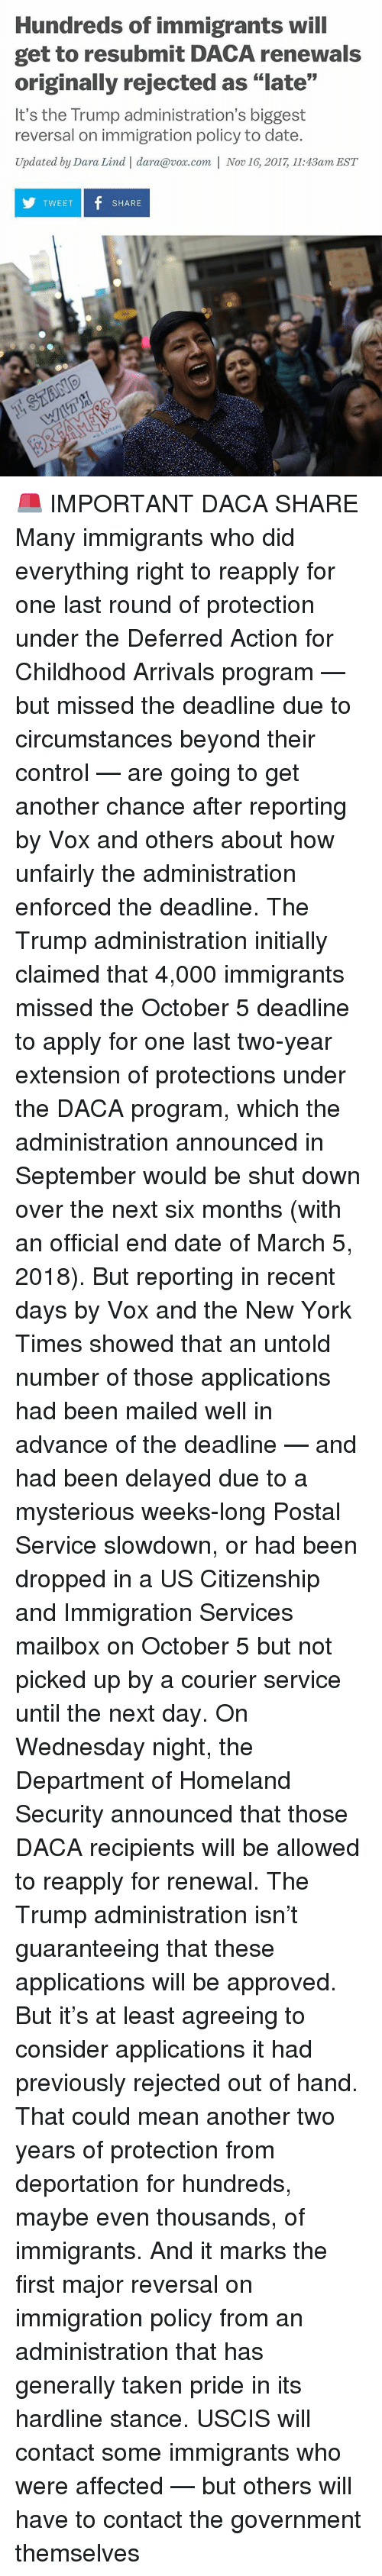 "Memes, New York, and Taken: Hundreds of immigrants will  get to resubmit DACA renewals  originally rejected as ""late""  It's the Trump administration's biggest  reversal on immigration policy to date.  Updated by Dara Lind 